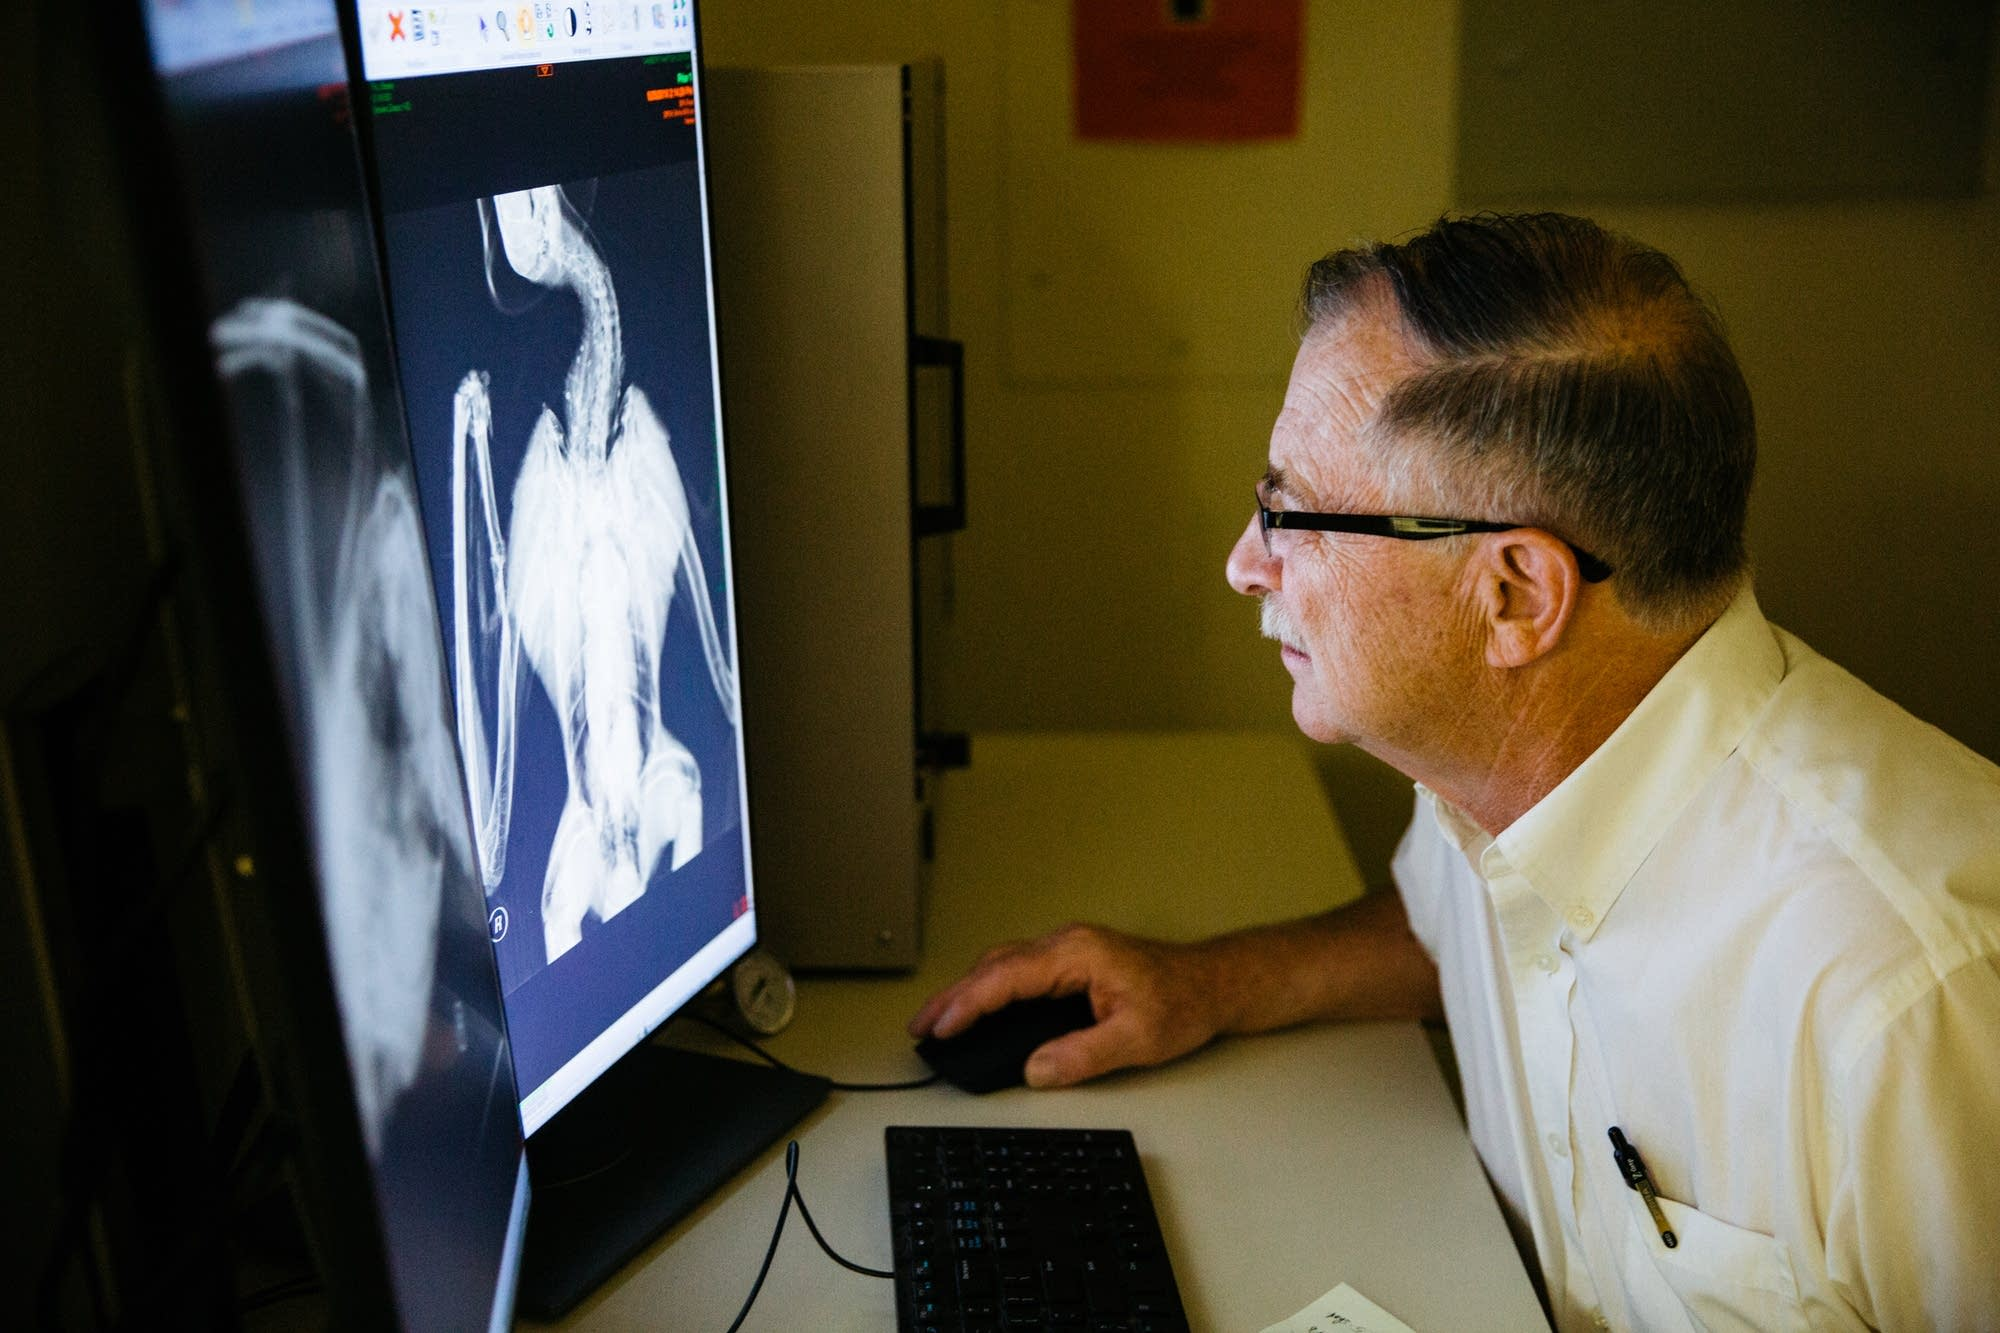 Dr. Patrick Redig looks at x-ray images of a raptor.